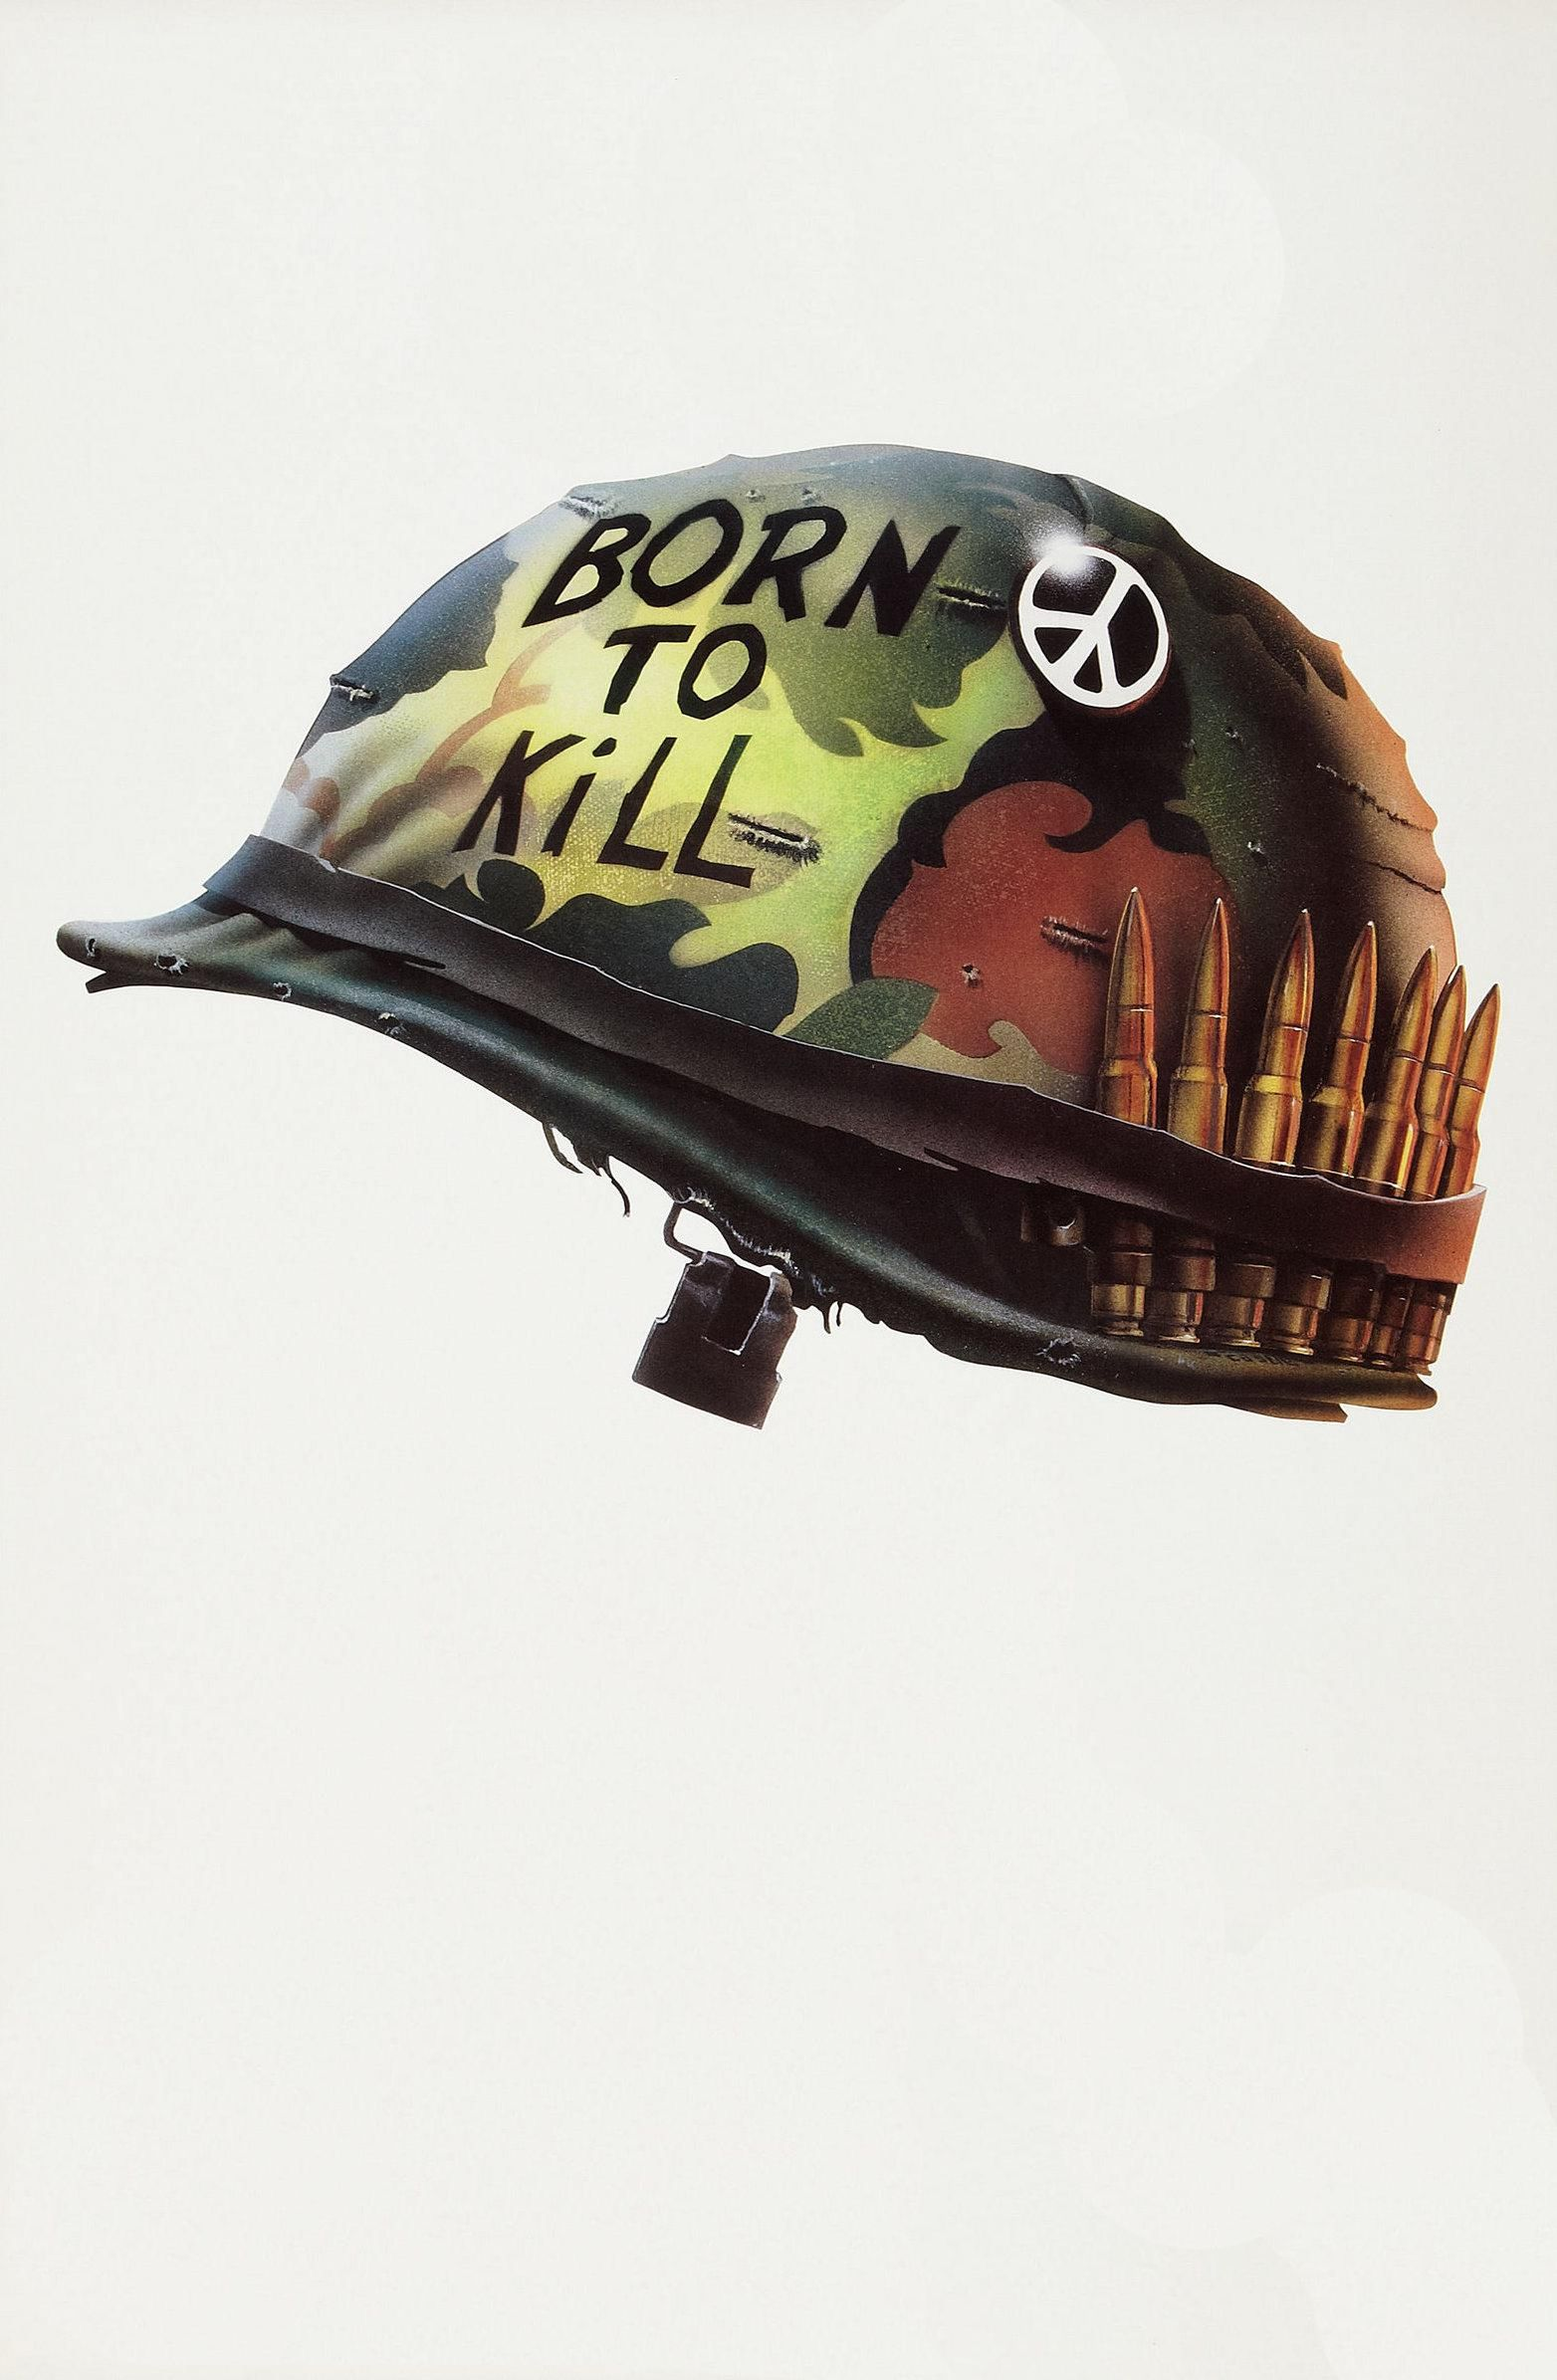 Full Metal Jacket 1987 Textless 1564x2391 Hq Backgrounds Hd Wallpapers Gallery Gallsource Com Full Metal Jacket Military Wallpaper Army Helmet